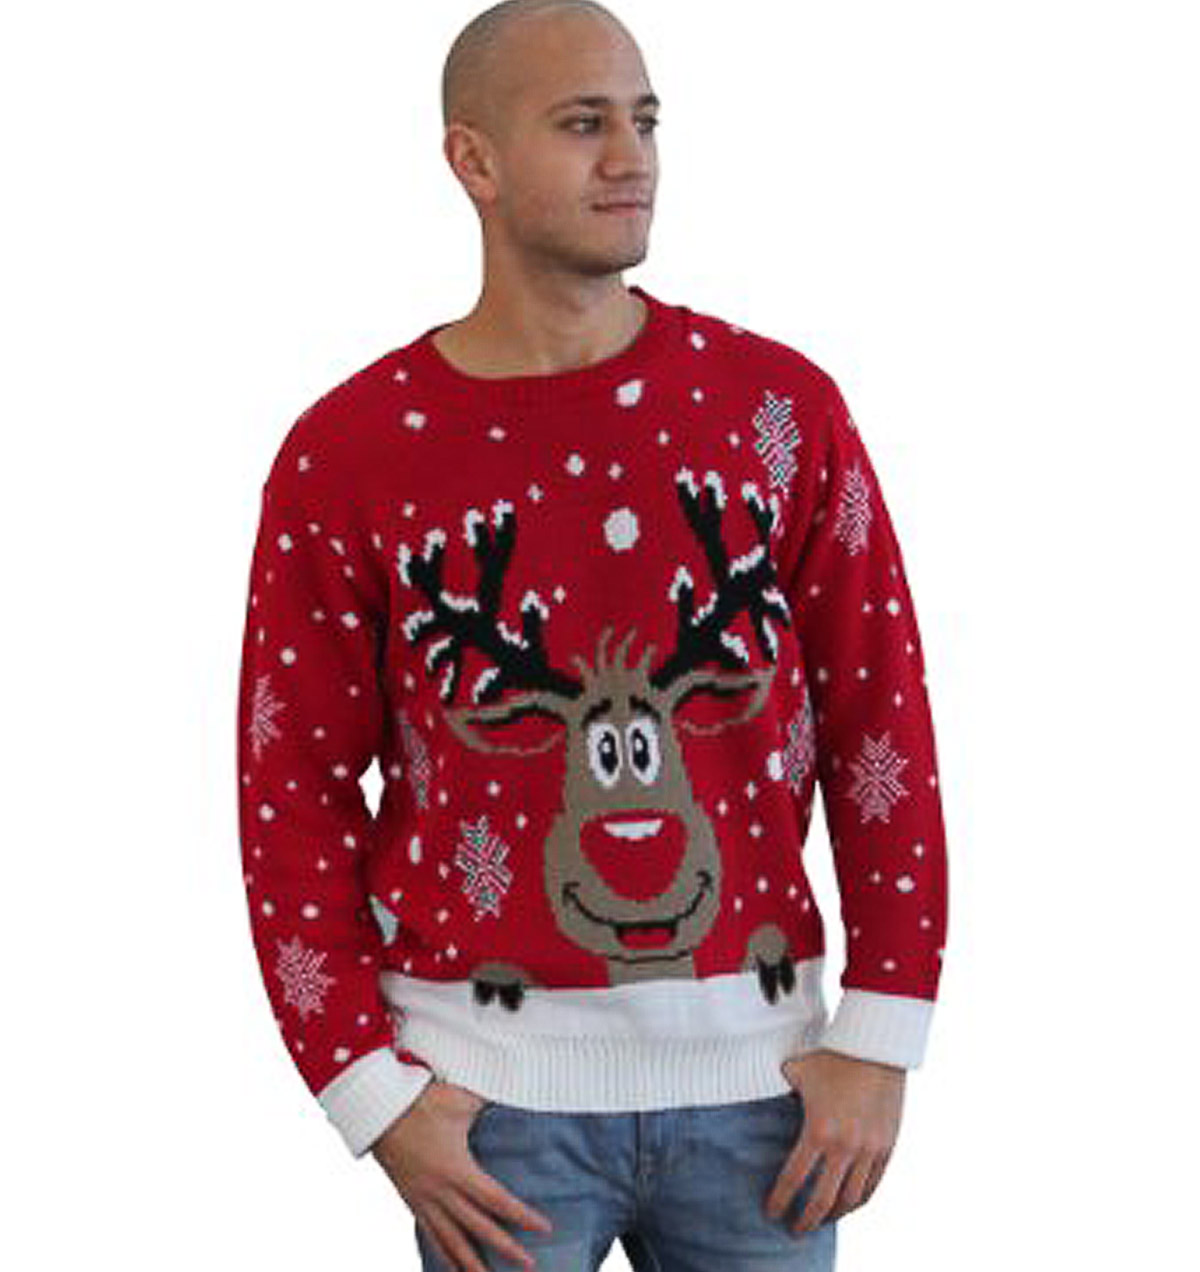 Rudolph Reindeer Christmas Sweater Maroon - Ugly Christmas ...